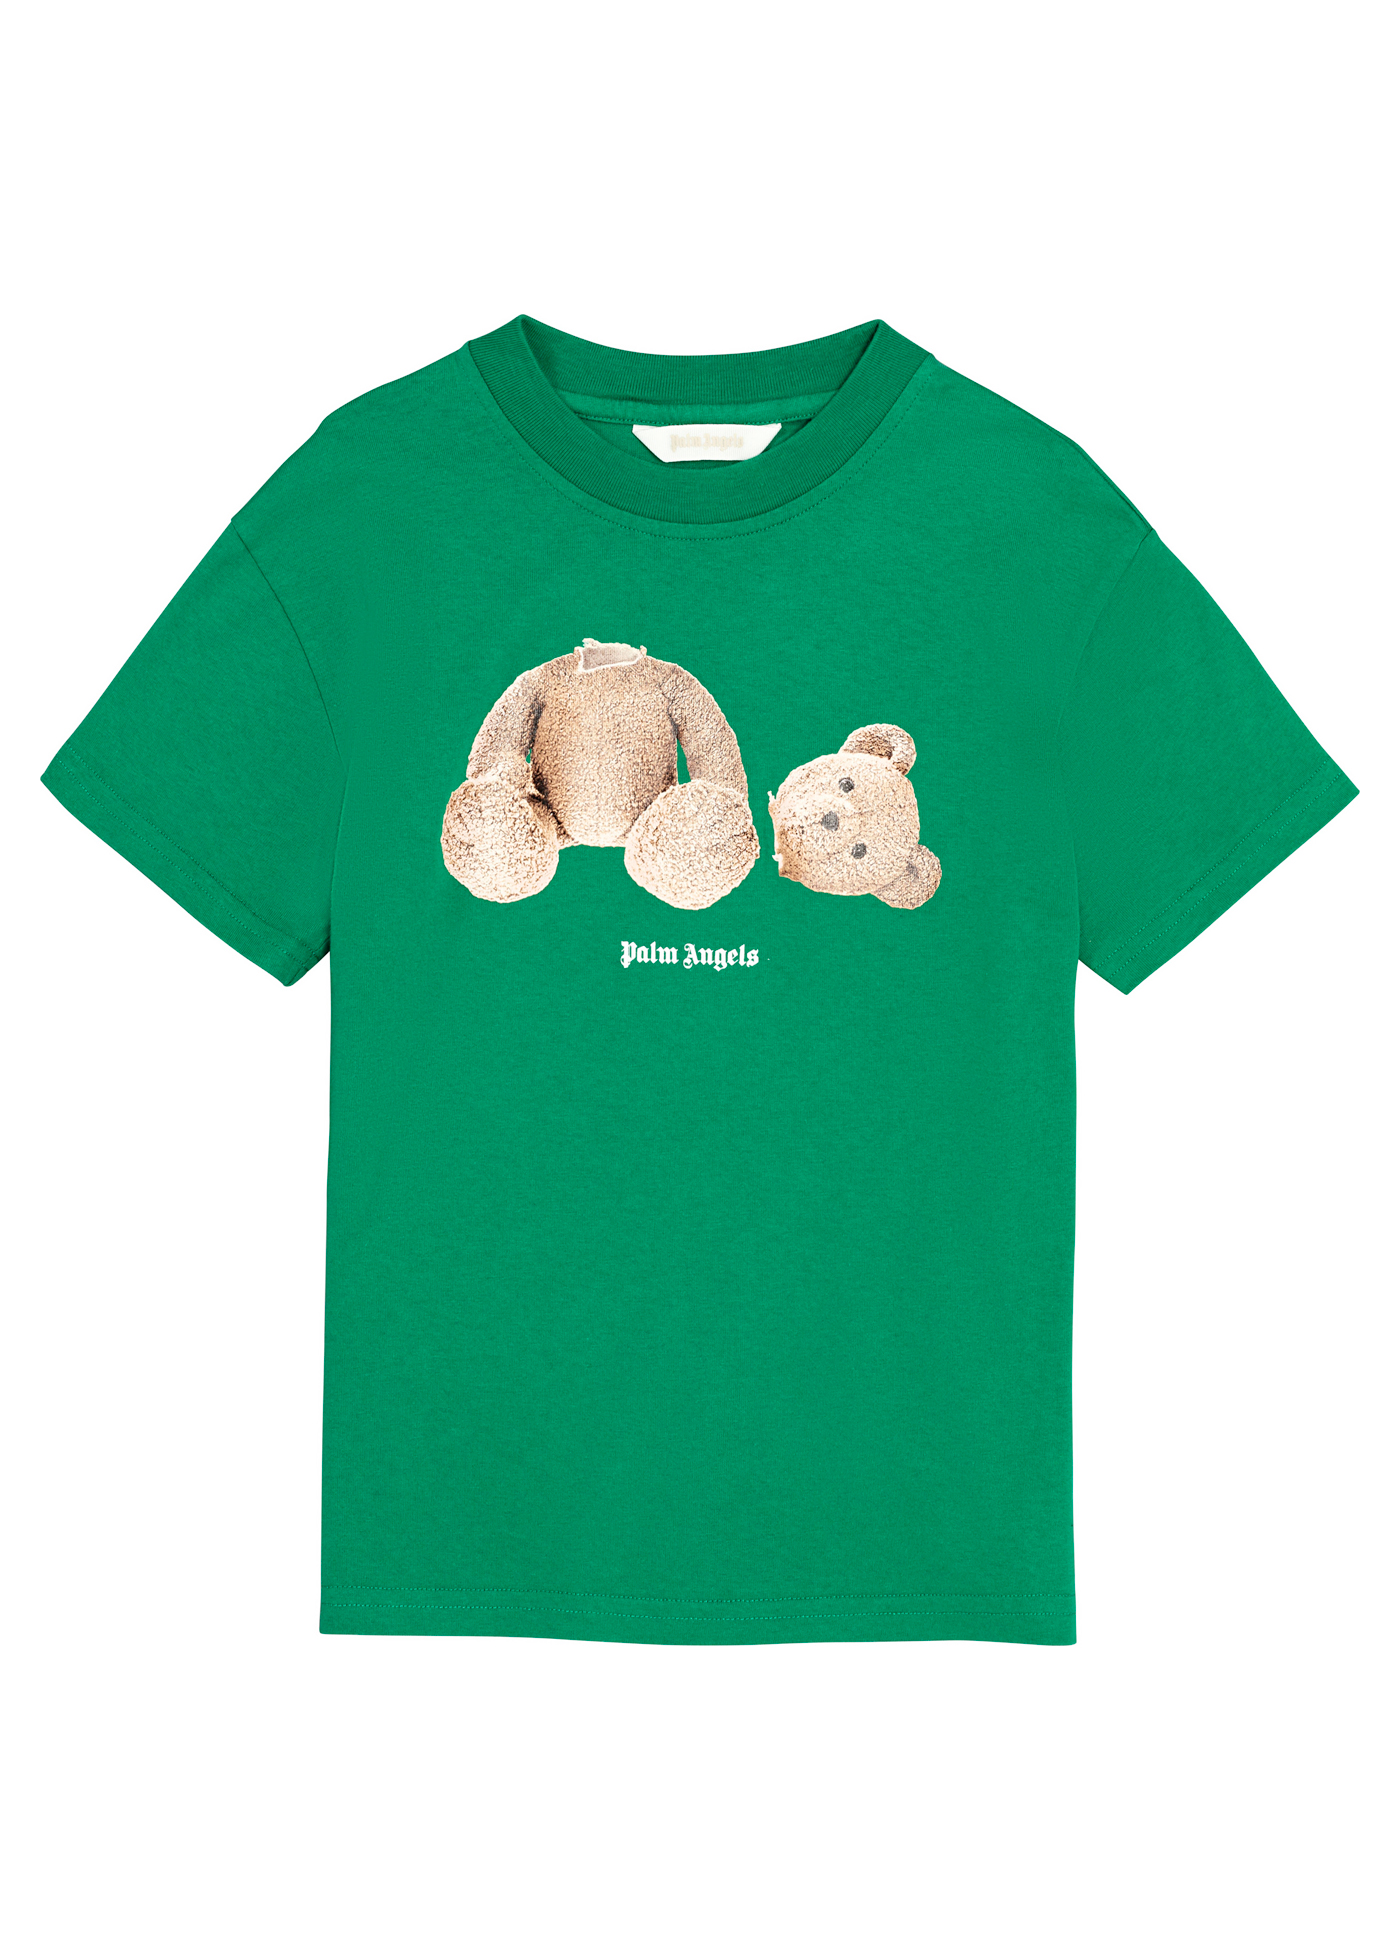 PALM ANGELS BEAR TEE S/S image number 0